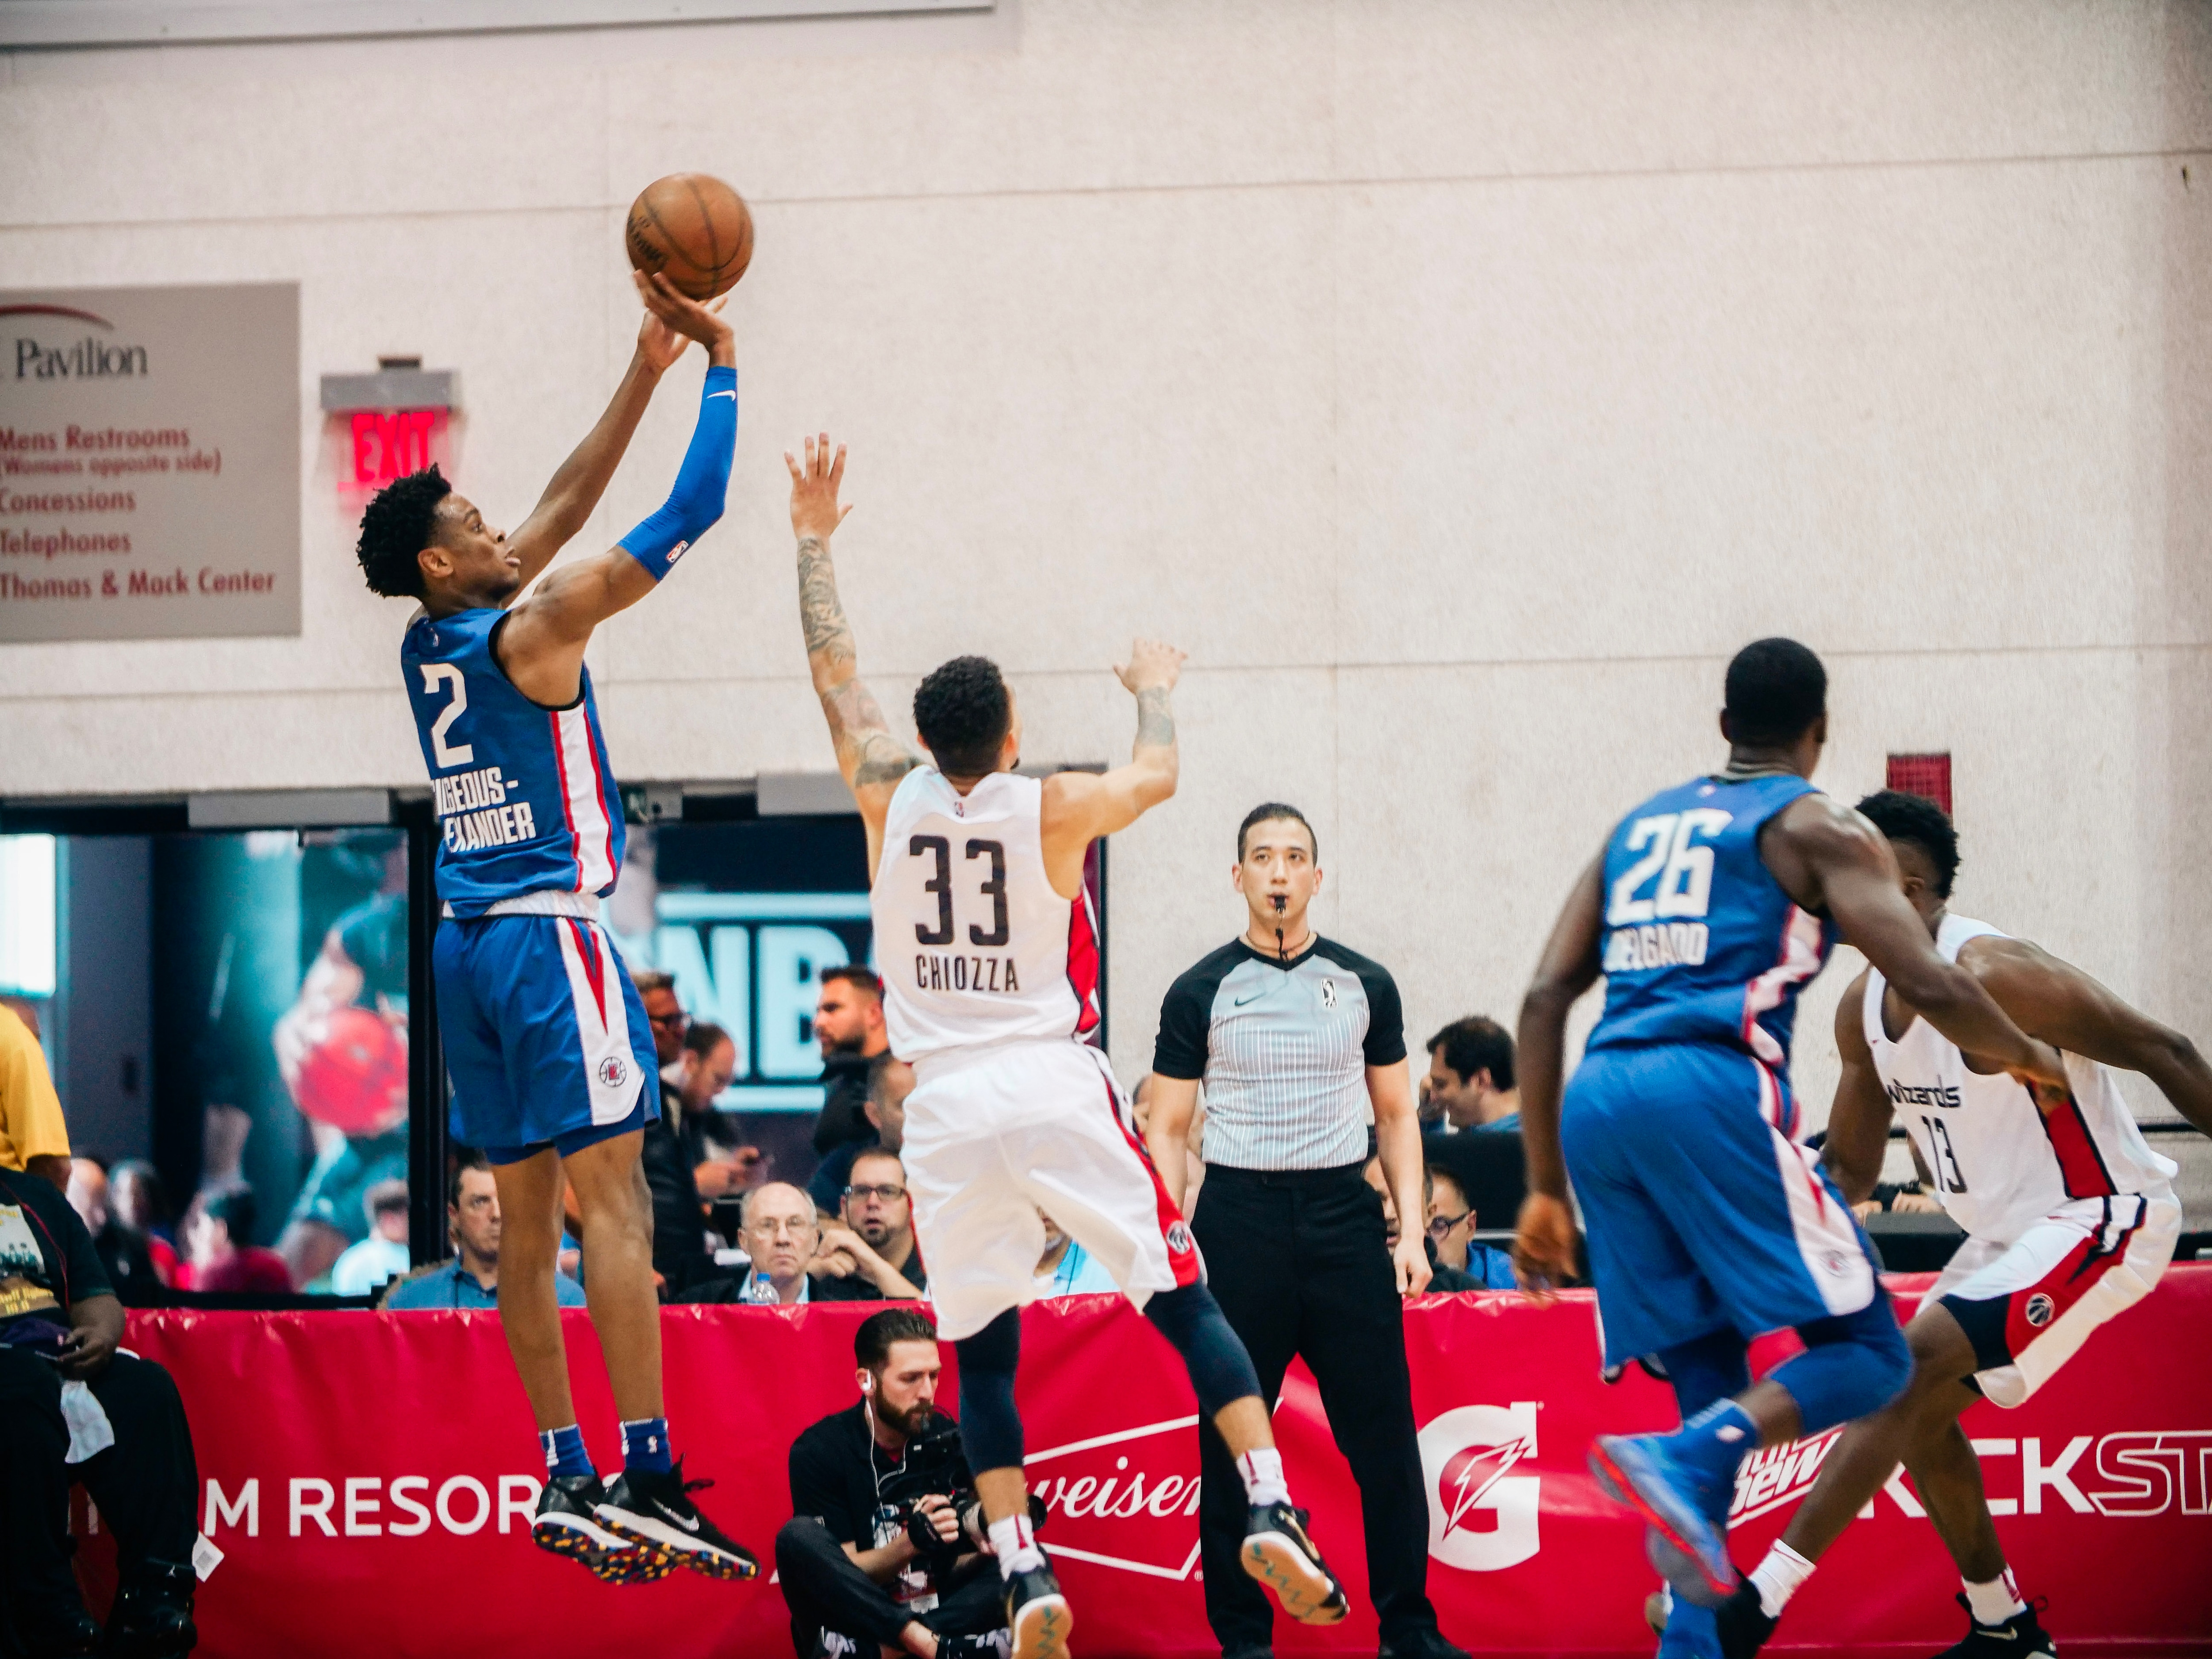 3f16c054a86 ... 2018 Summer League, Shai Gilgeous-Alexander, LA Clippers. Shai averaged  19 points, 4.8 rebounds, 4 assists and 2.3 steals per game during